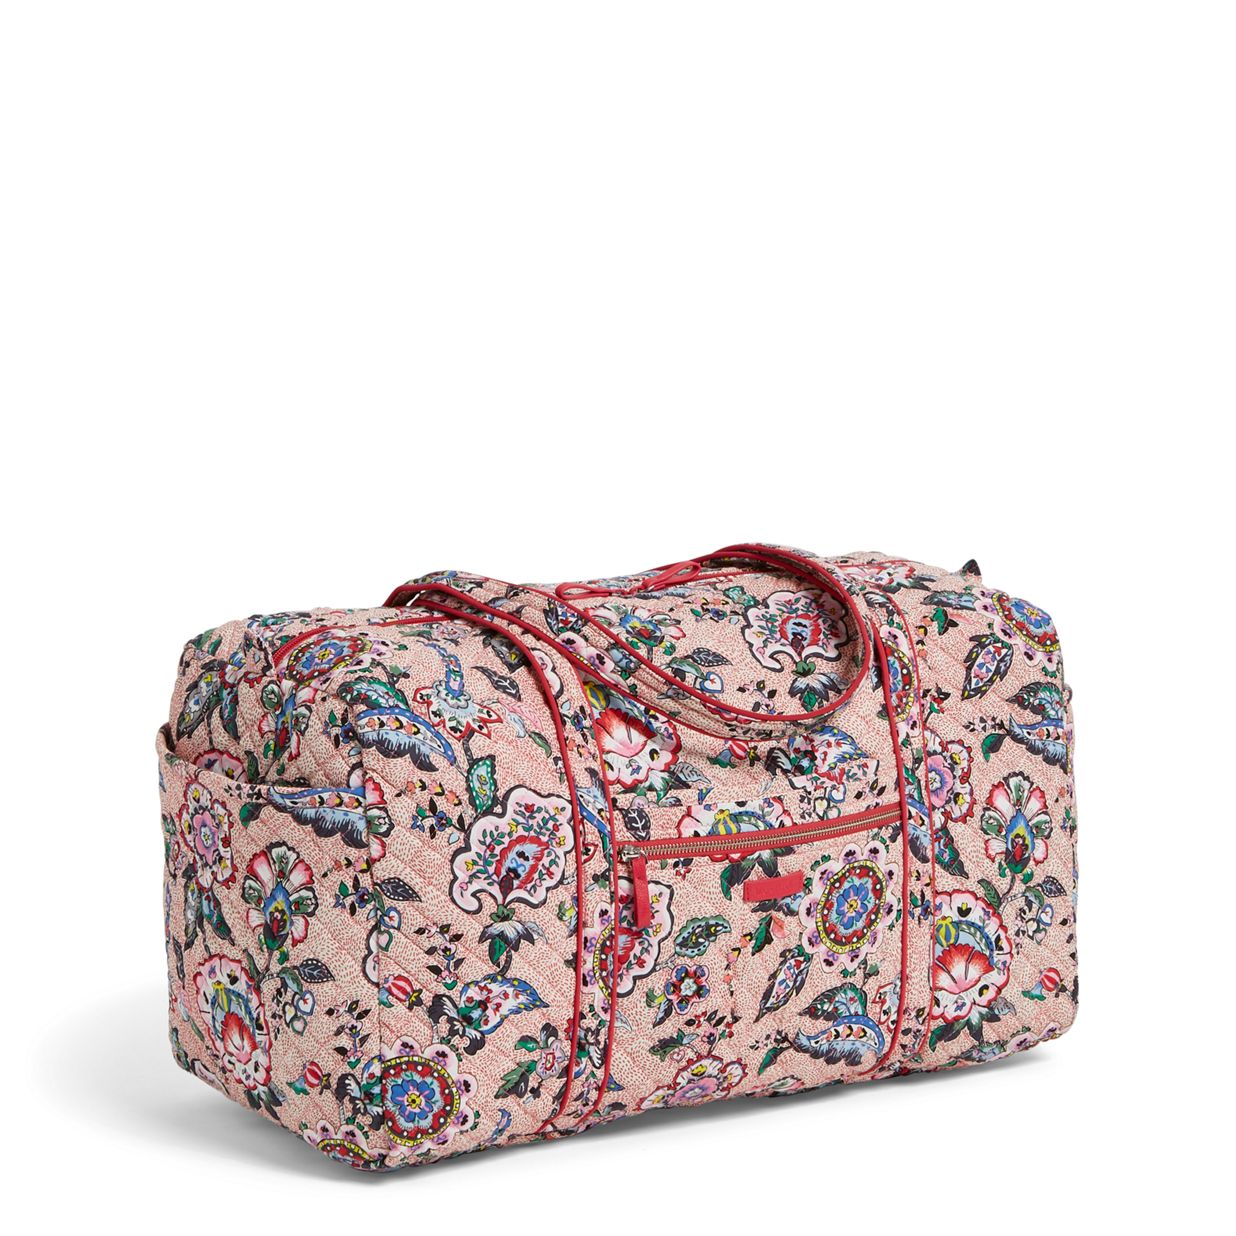 ... Image of Iconic Large Travel Duffel in Lilac Medallion 88d5207dd030c